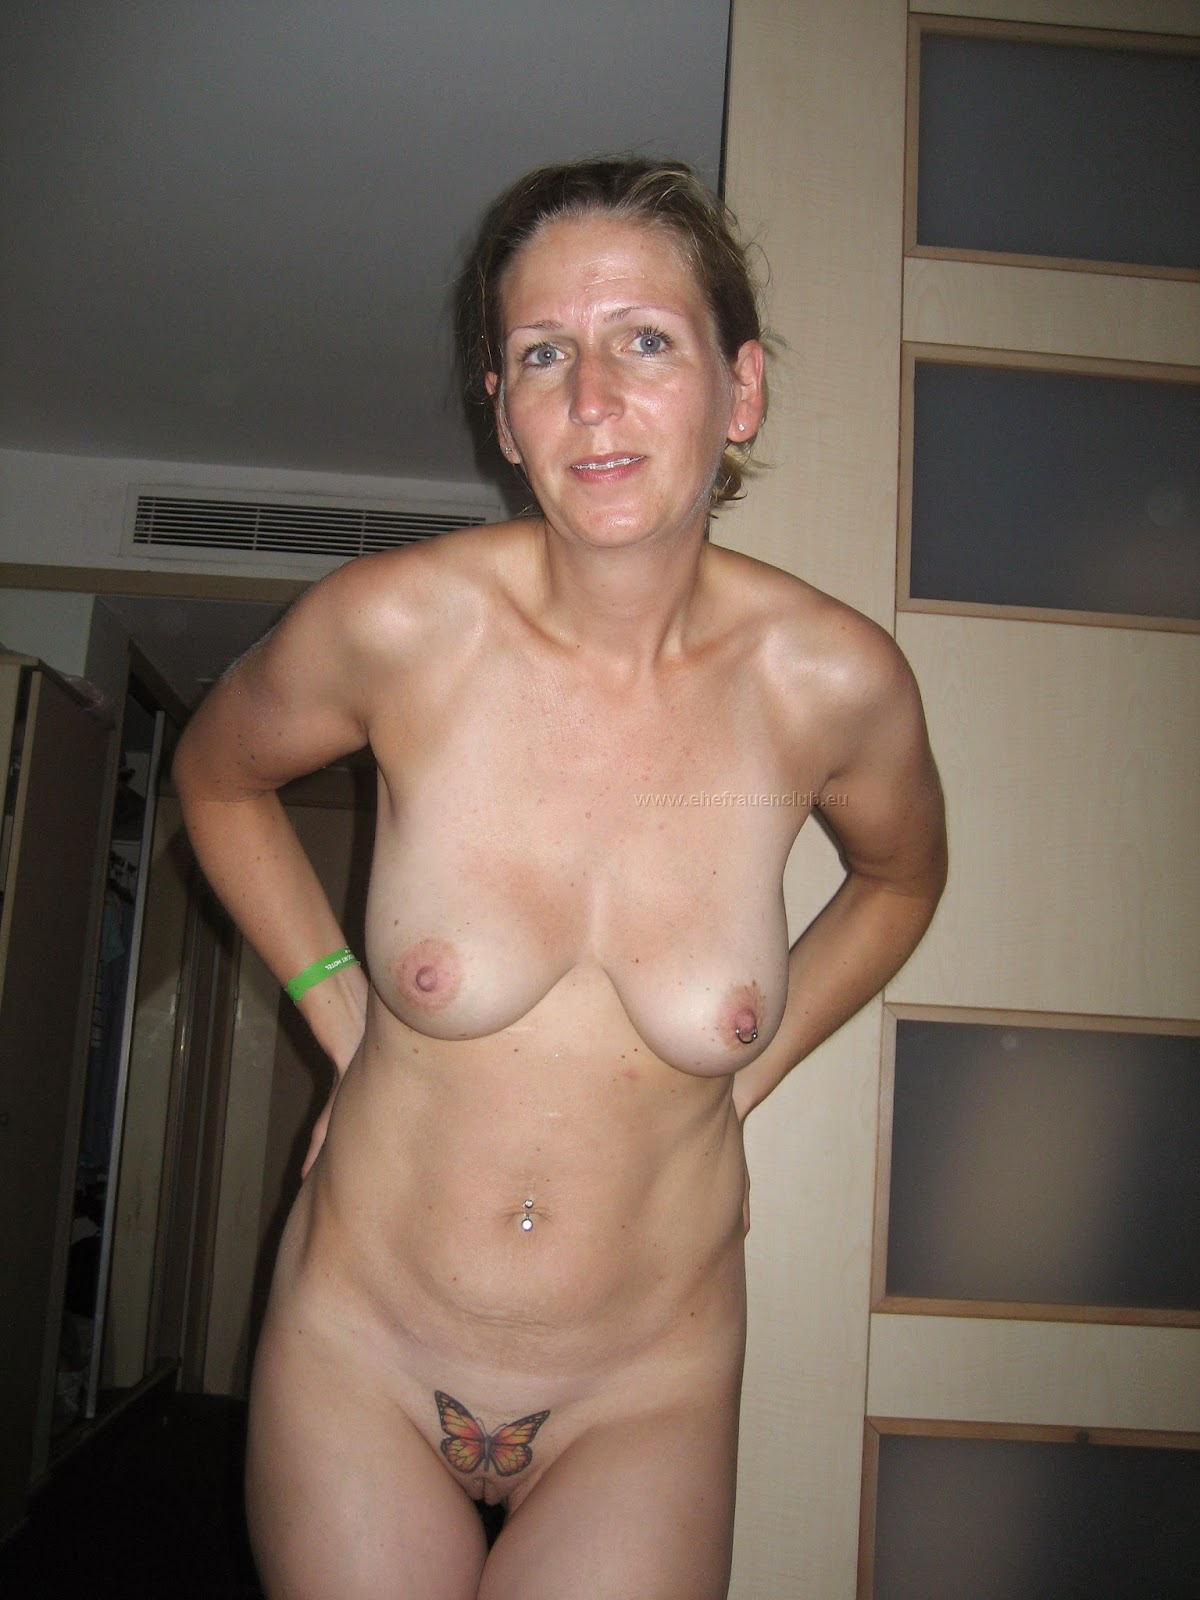 Busty wife moglie tettona naked bathroom 3